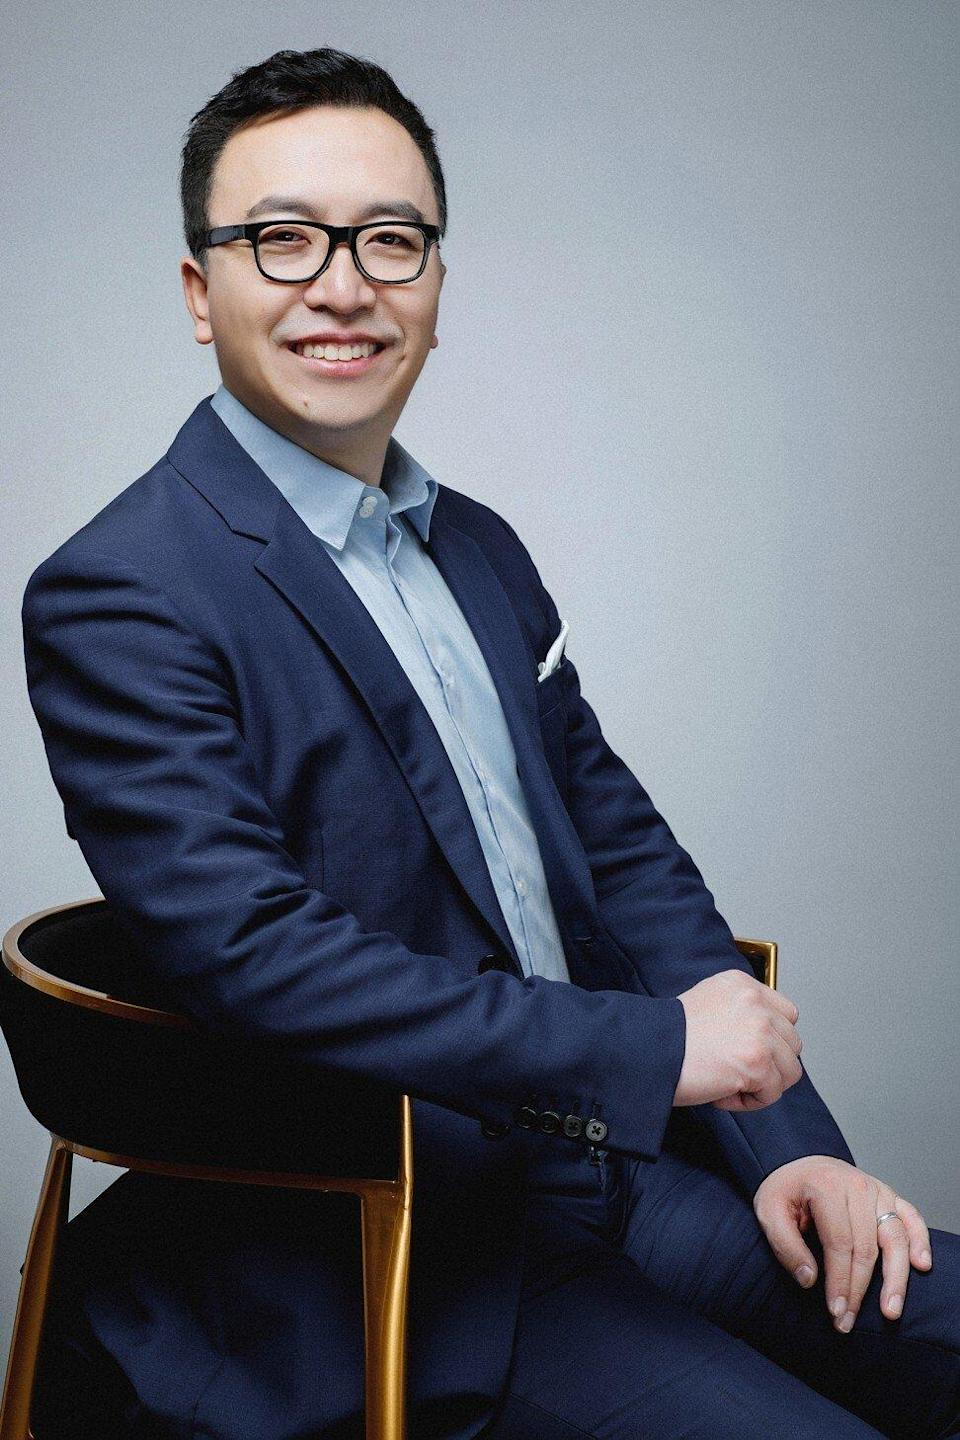 Honor CEO George Zhao Ming faces new challenges and opportunities since Huawei was forced to sell its budget brand in November. Photo: Honor